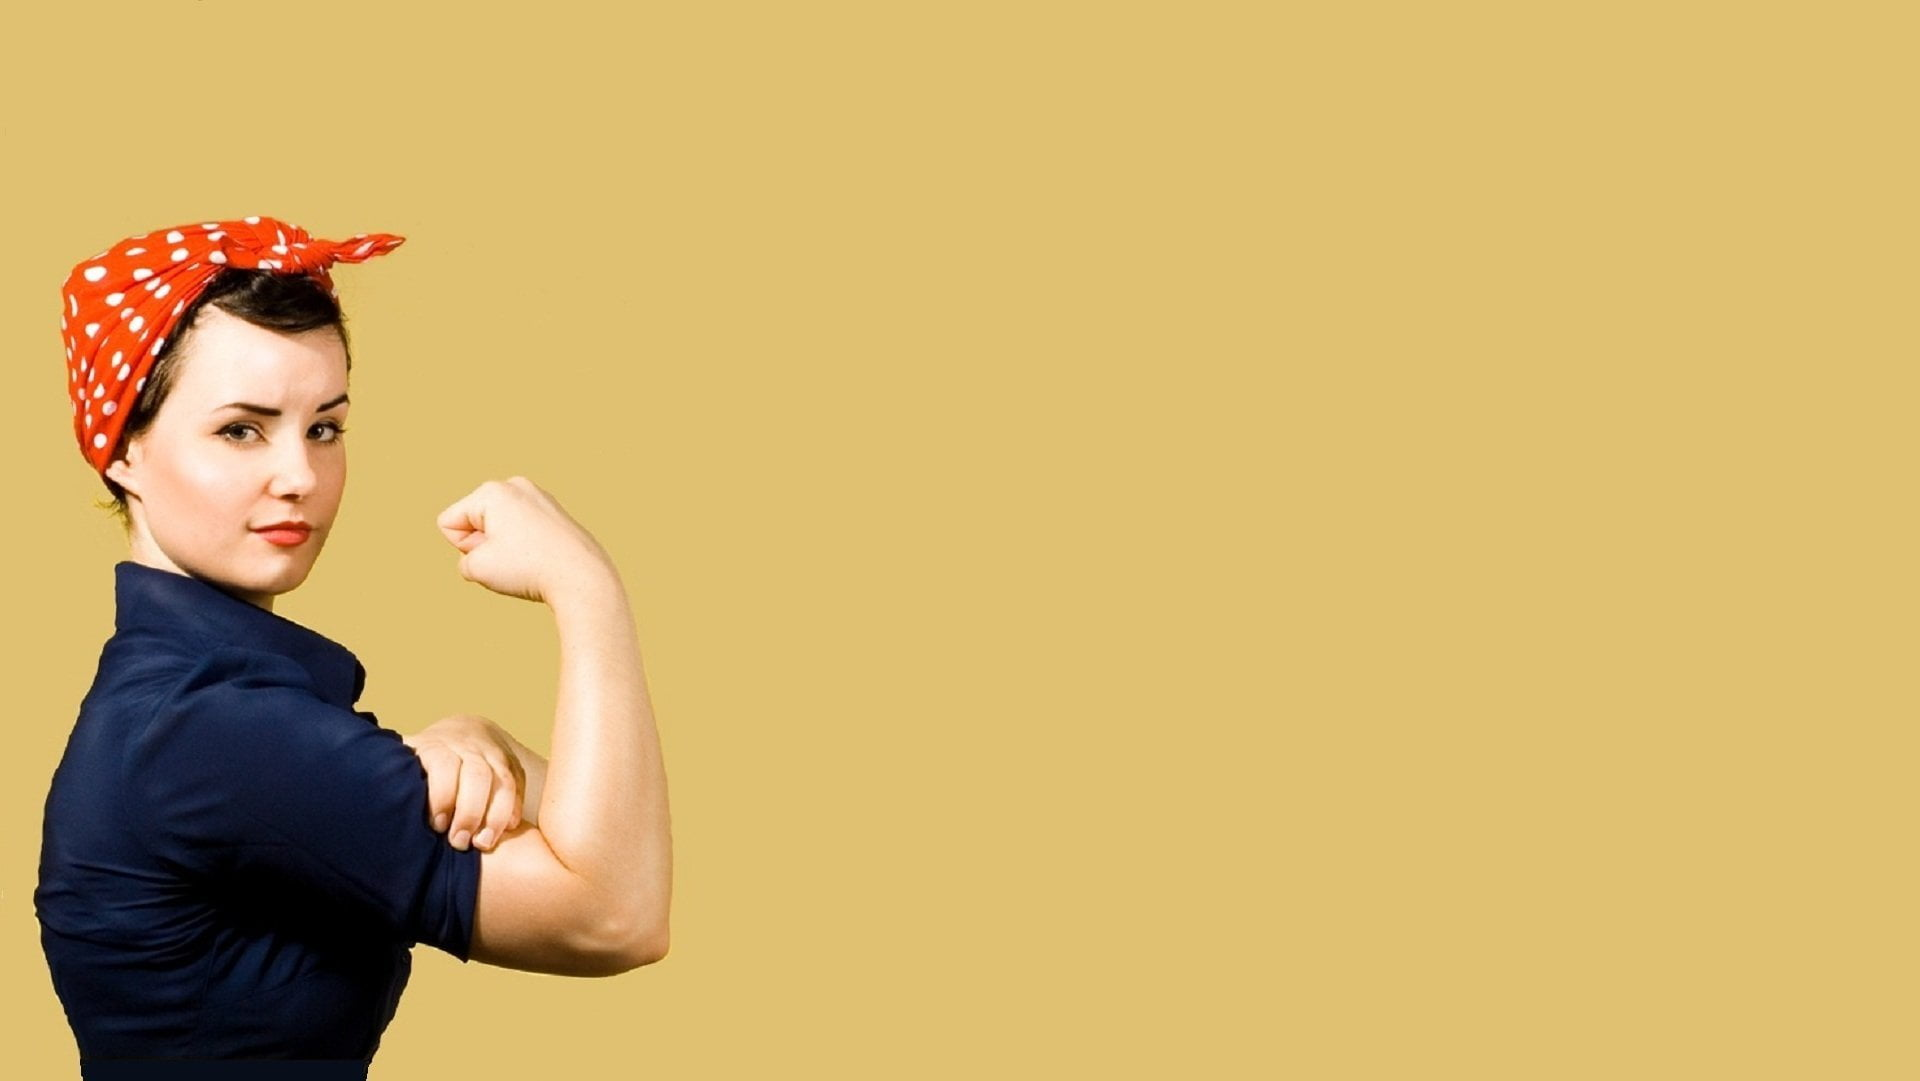 rosie-the-riveter-rosie-the-riveter-poster-girl-gesture-we-can-do-it